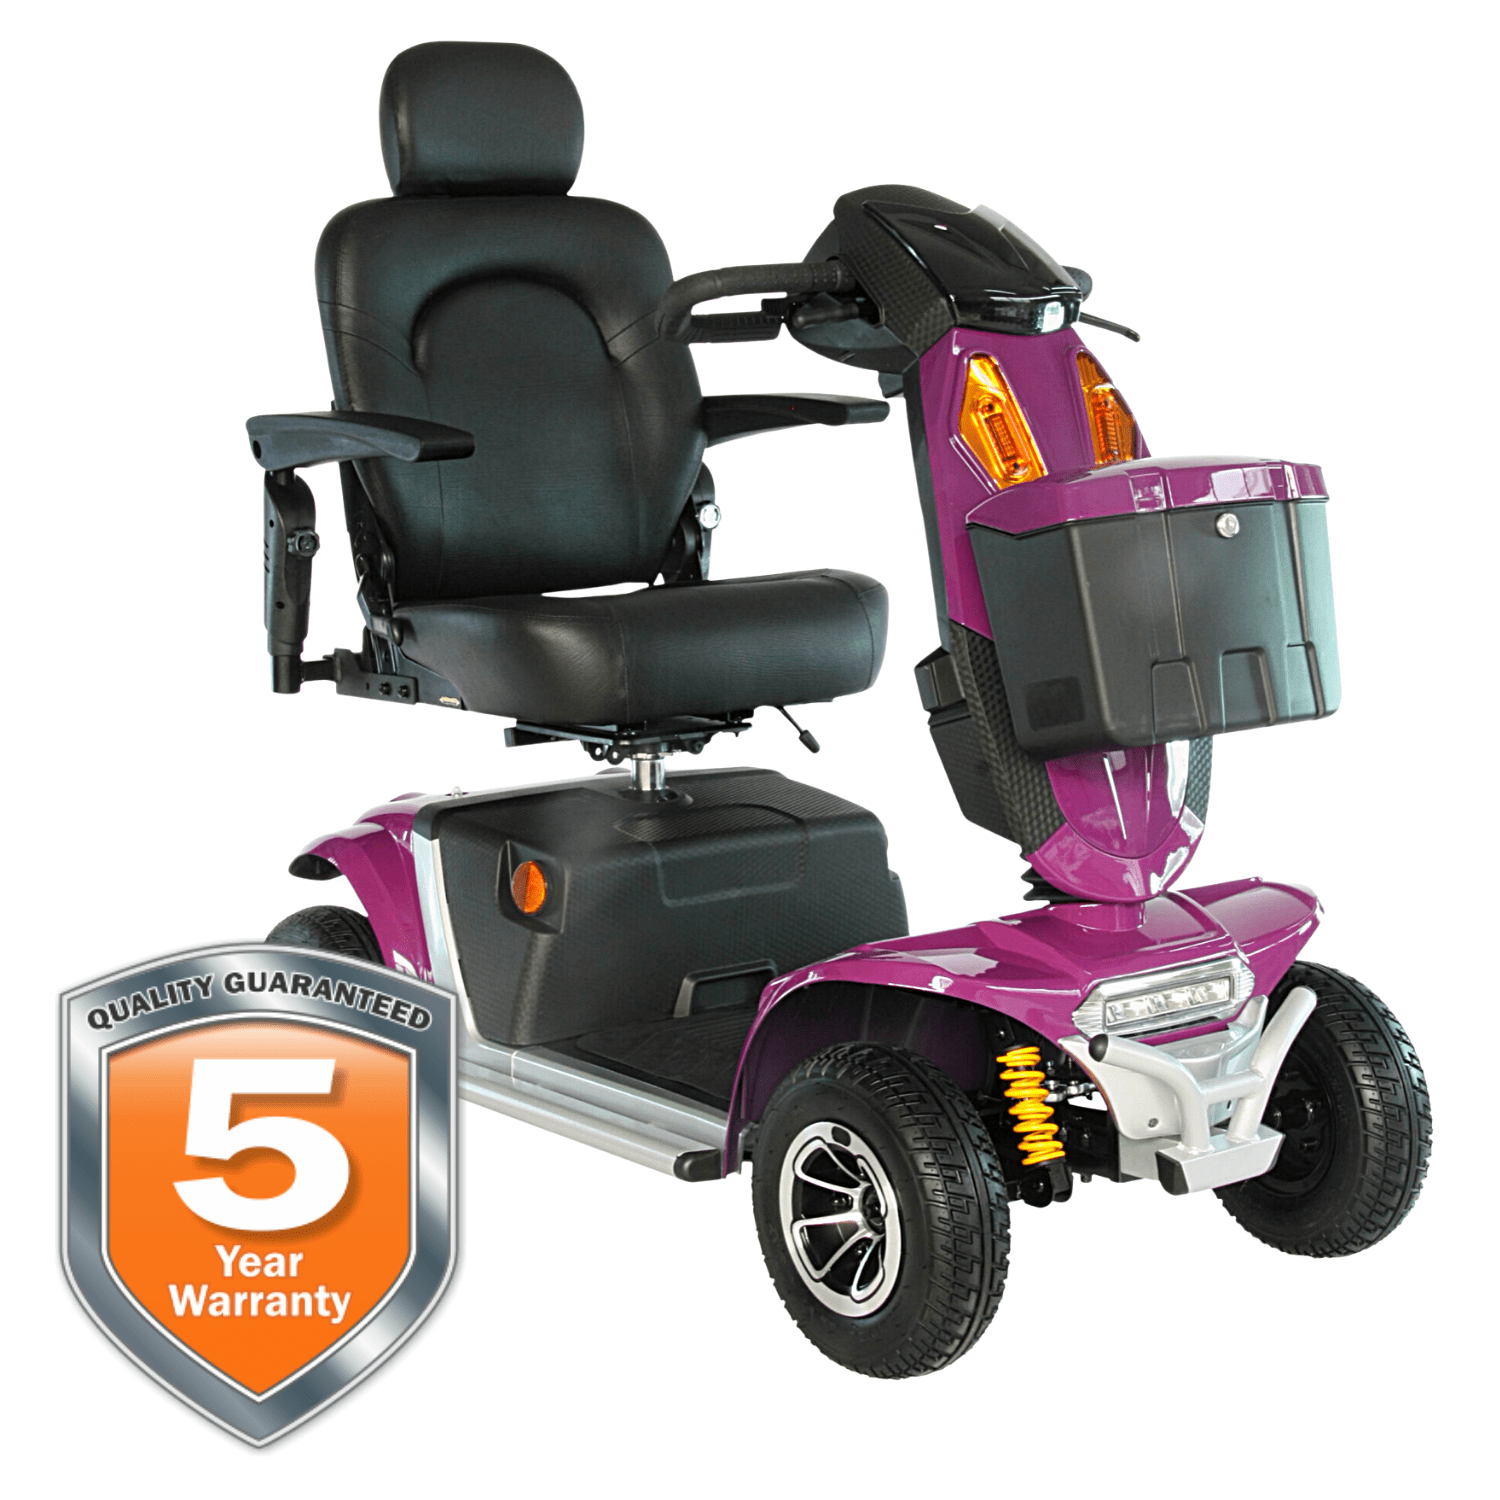 Top Gun Blazer Mobility Scooter – Product Image